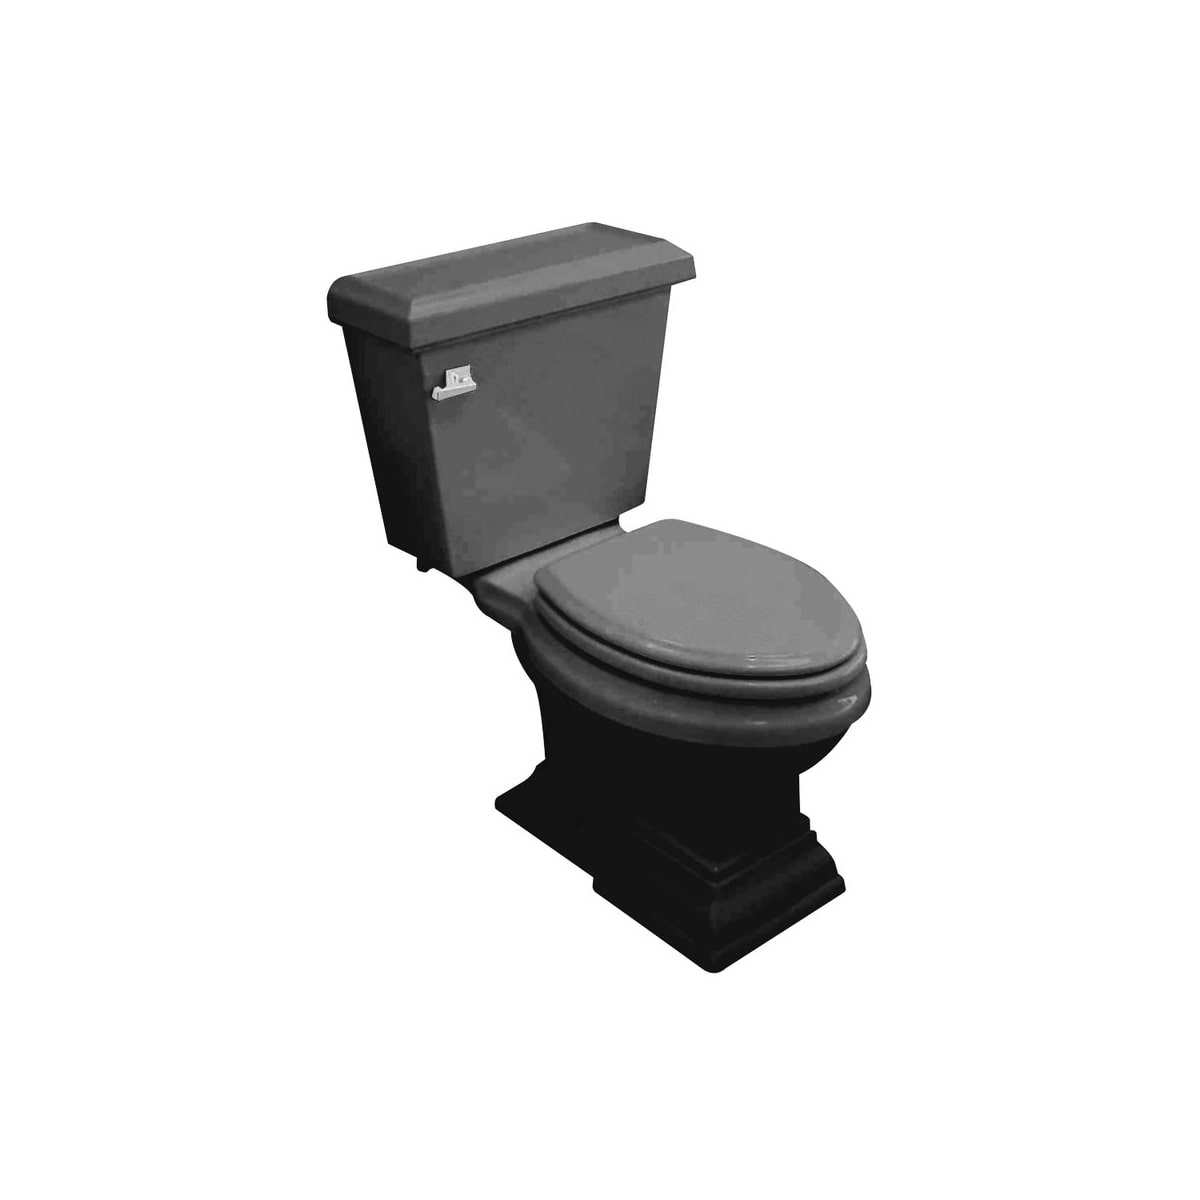 American Standard 2787.016.178 Black Town Square Two-Piece Round ...